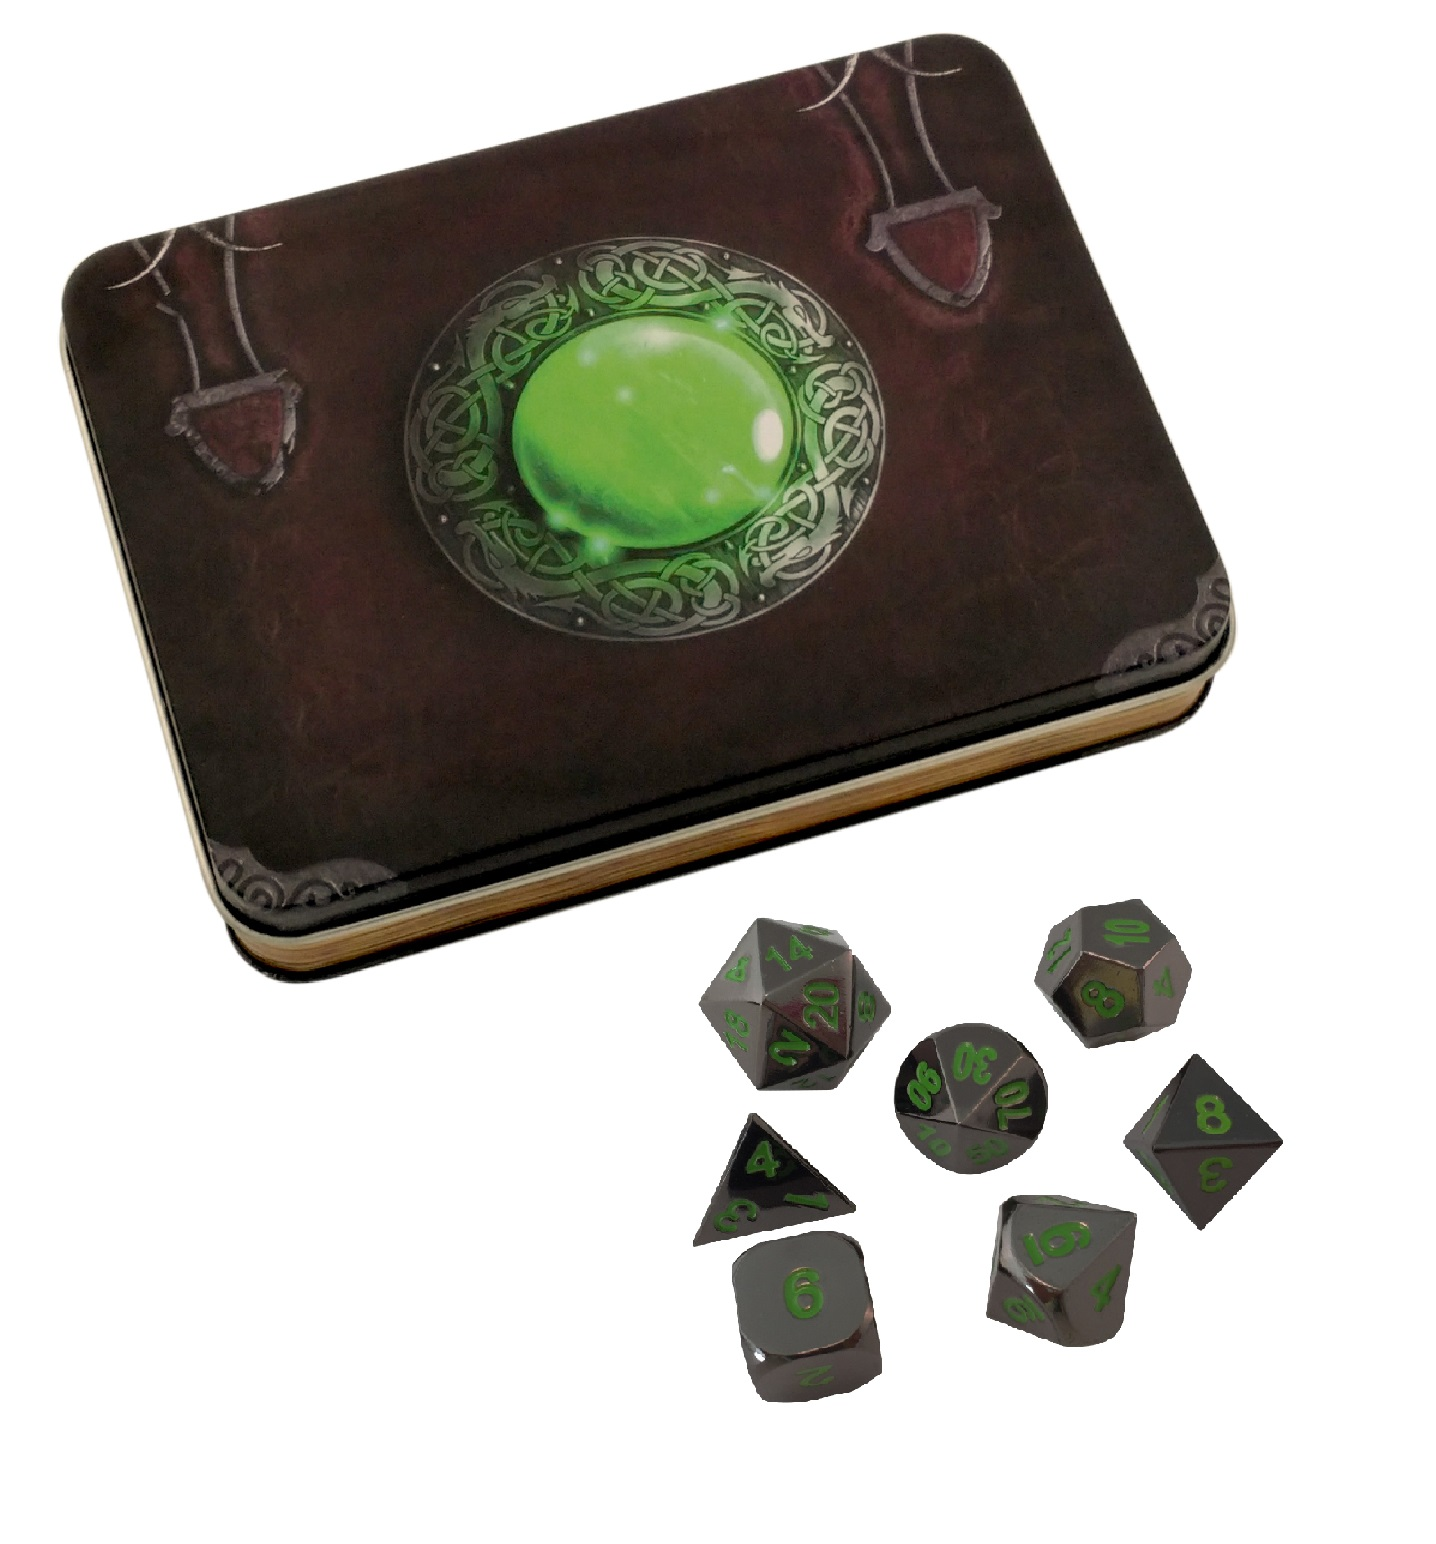 Wizards Grimoire with Black Dragon | Shiny Black Nickel with Green Numbering Metal Dice -